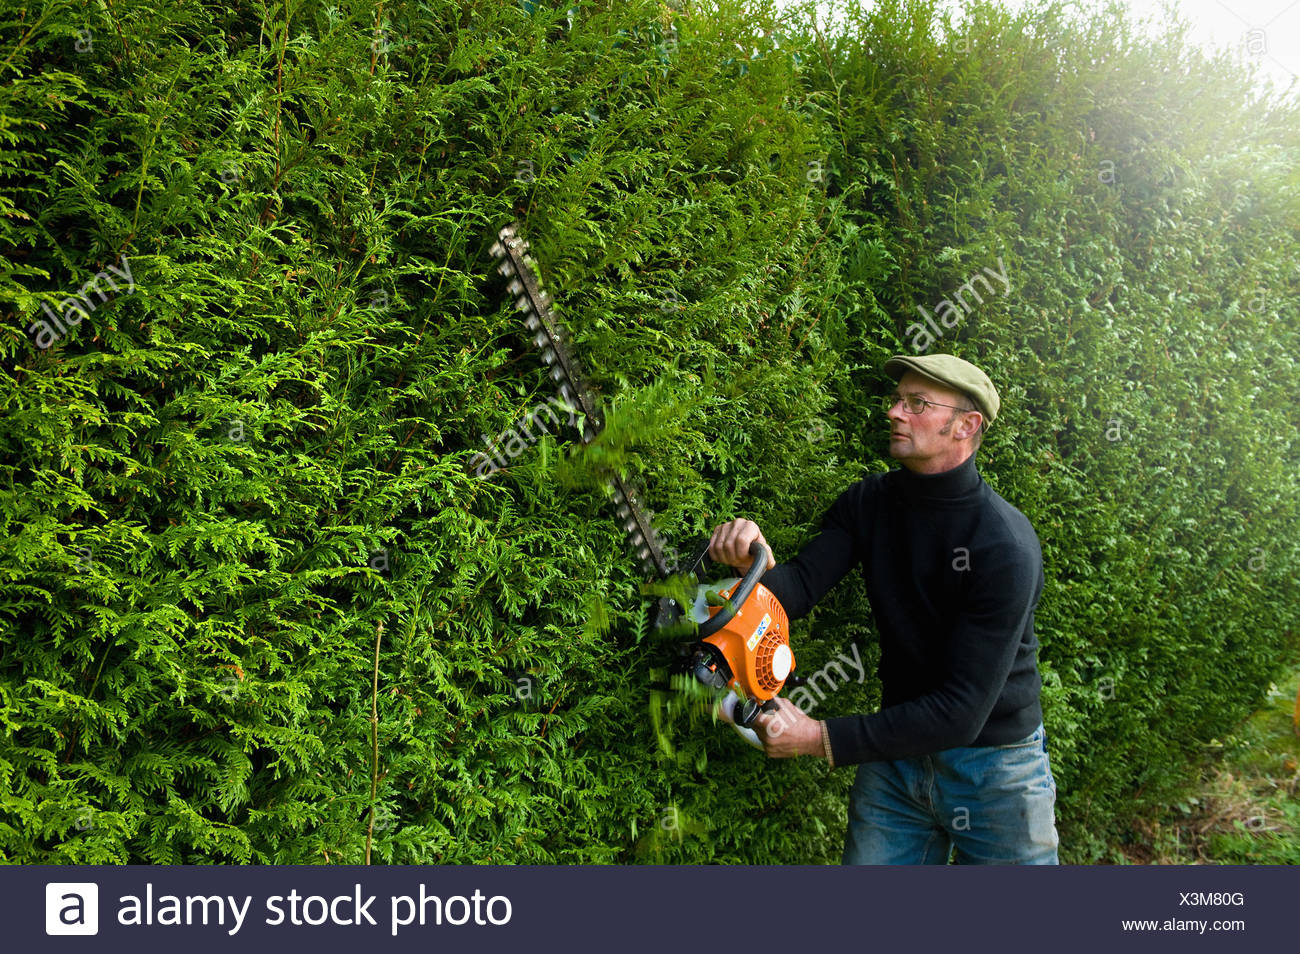 A man trimming a tall hedge with a motorized hedge trimmer. - Stock Image